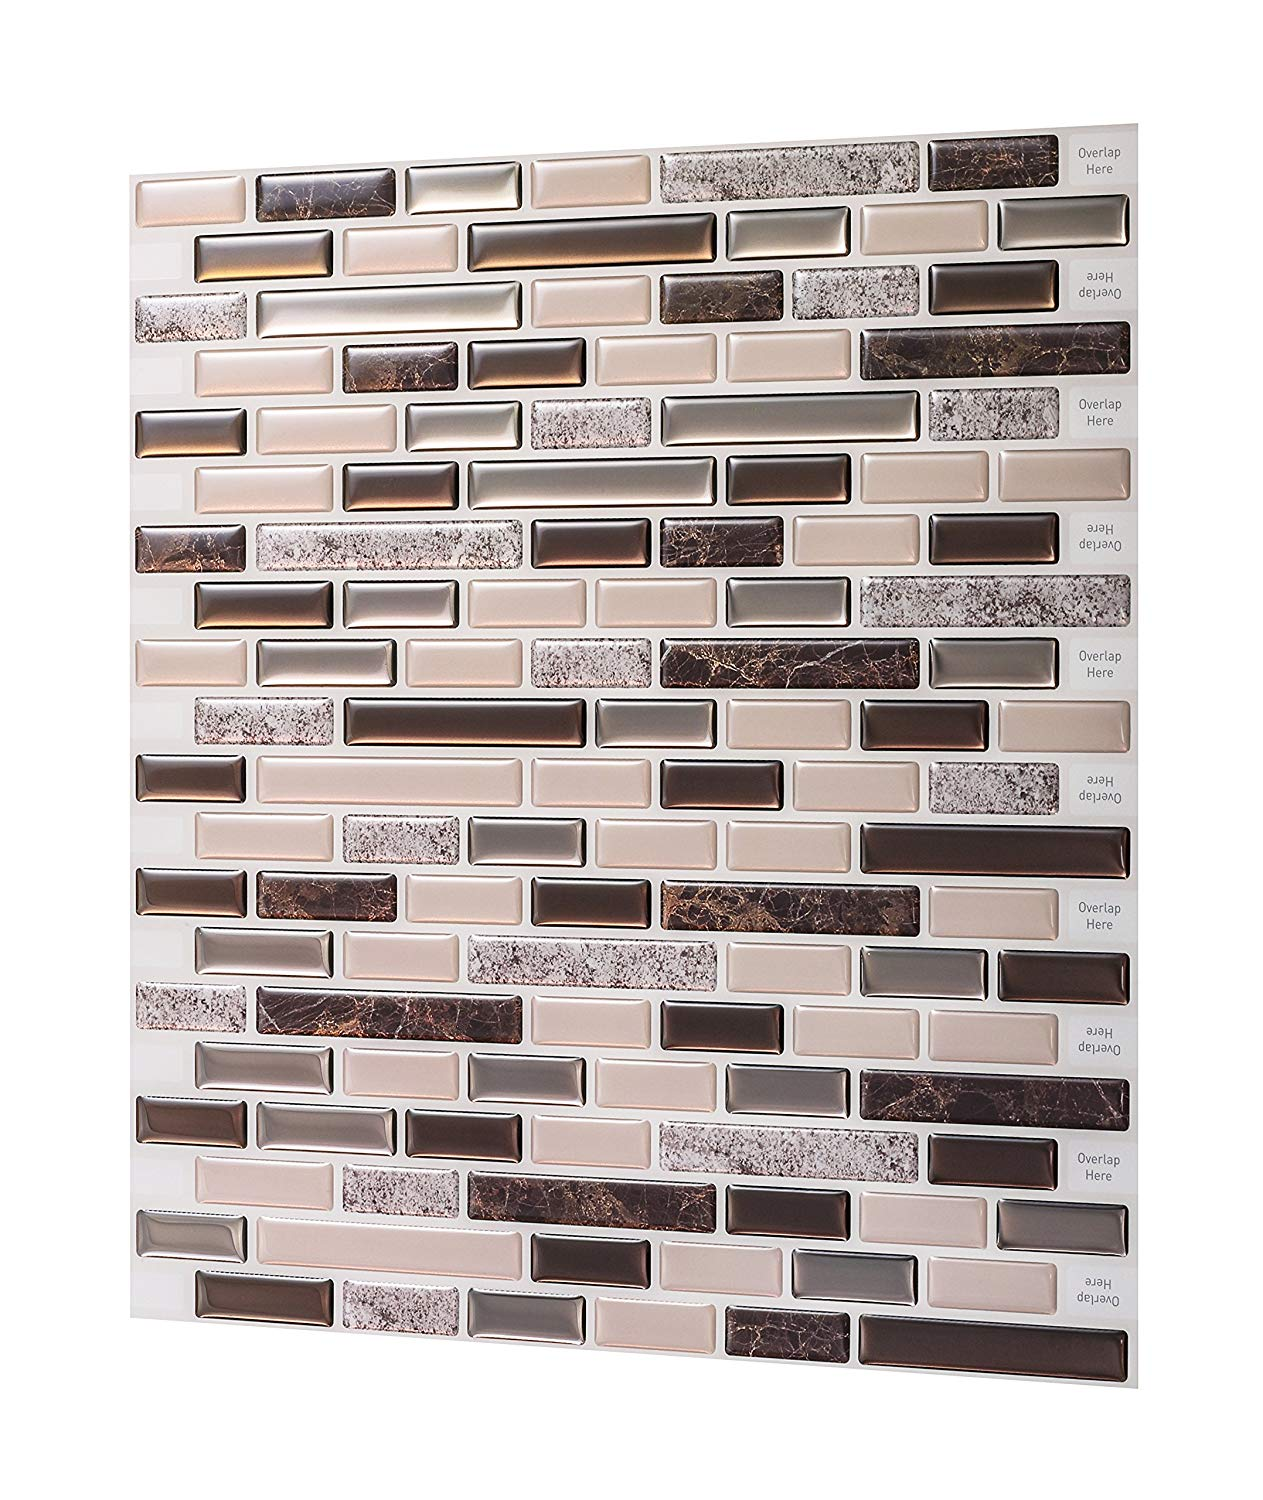 3D  creative wall paper easy DIY backsplash tile peel and stick for bedroom kitchen apartment